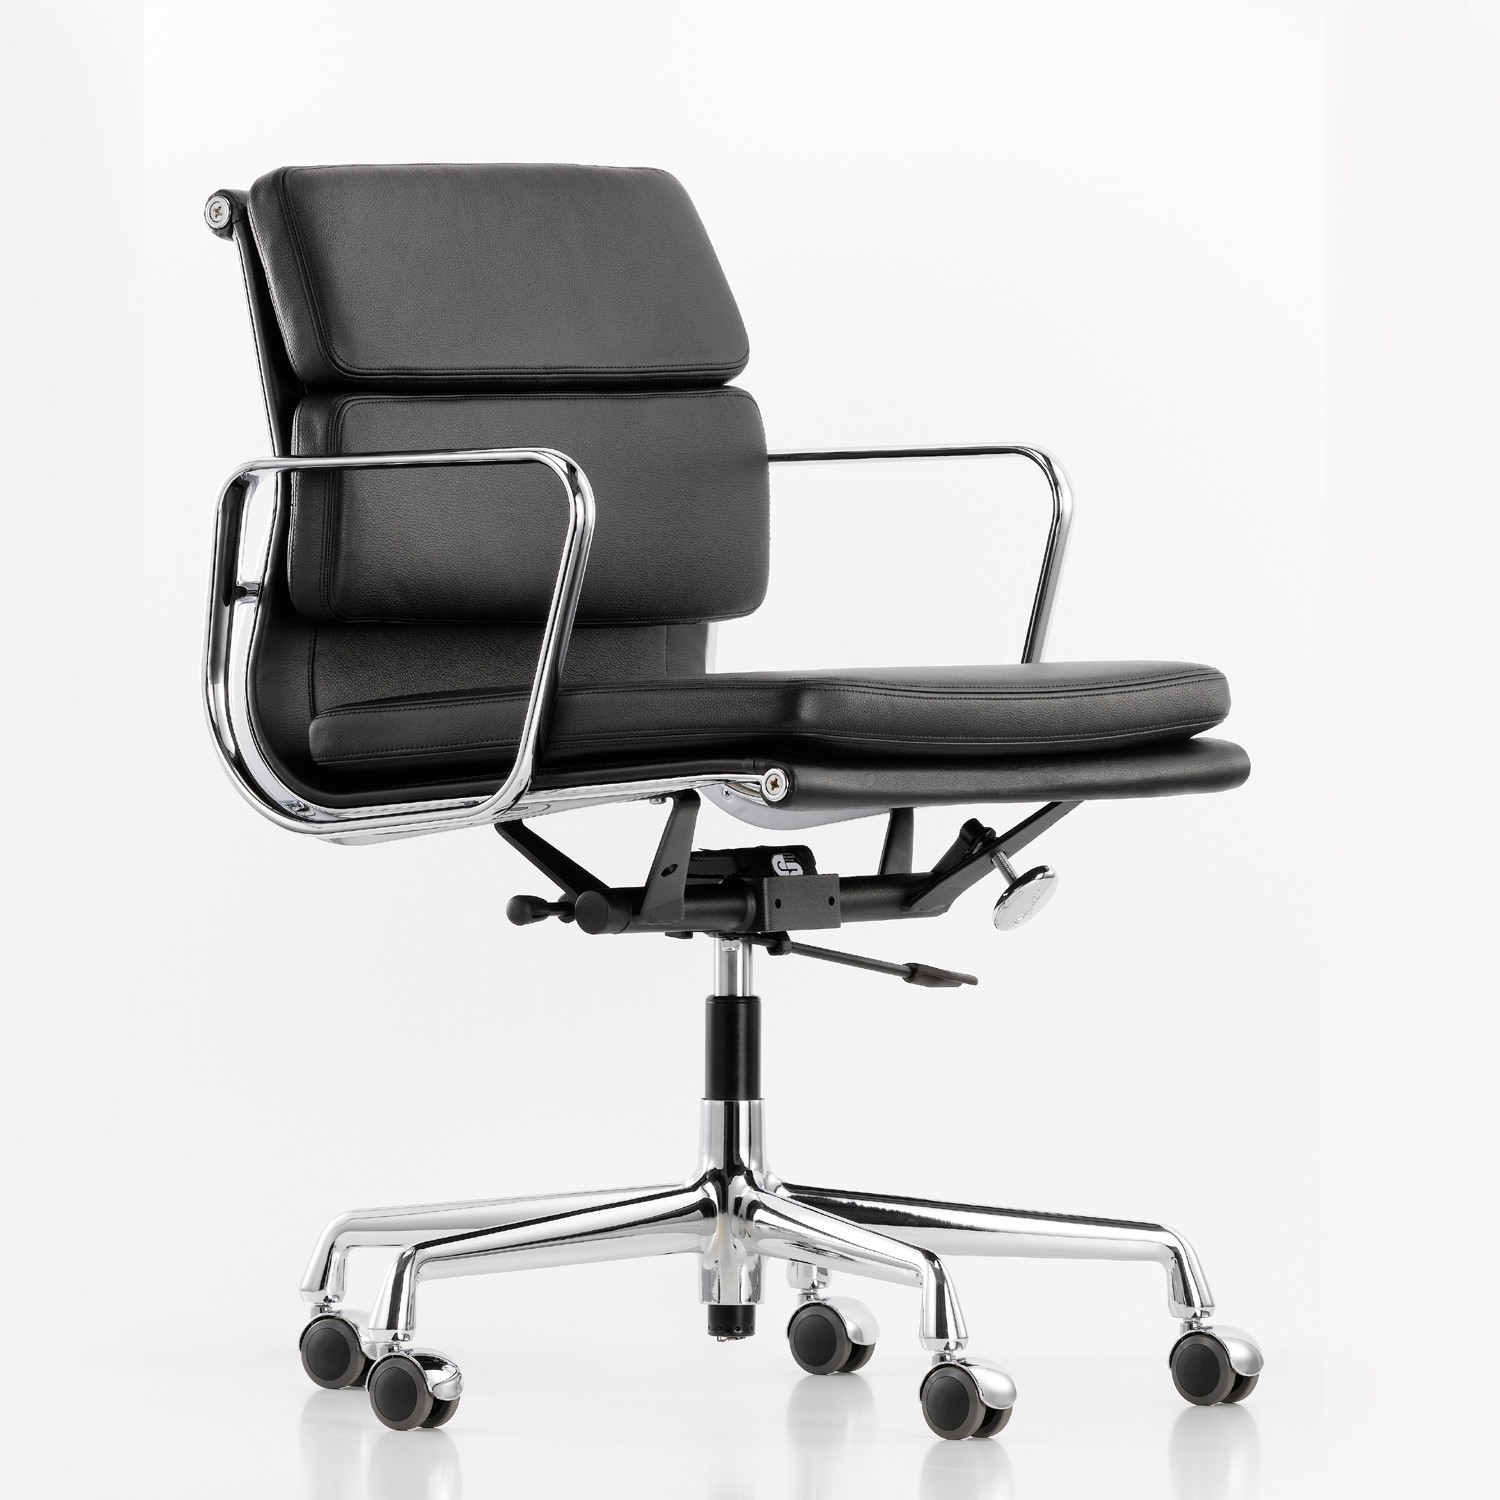 Eames EA217 Soft Pad Office Chair by Vitra